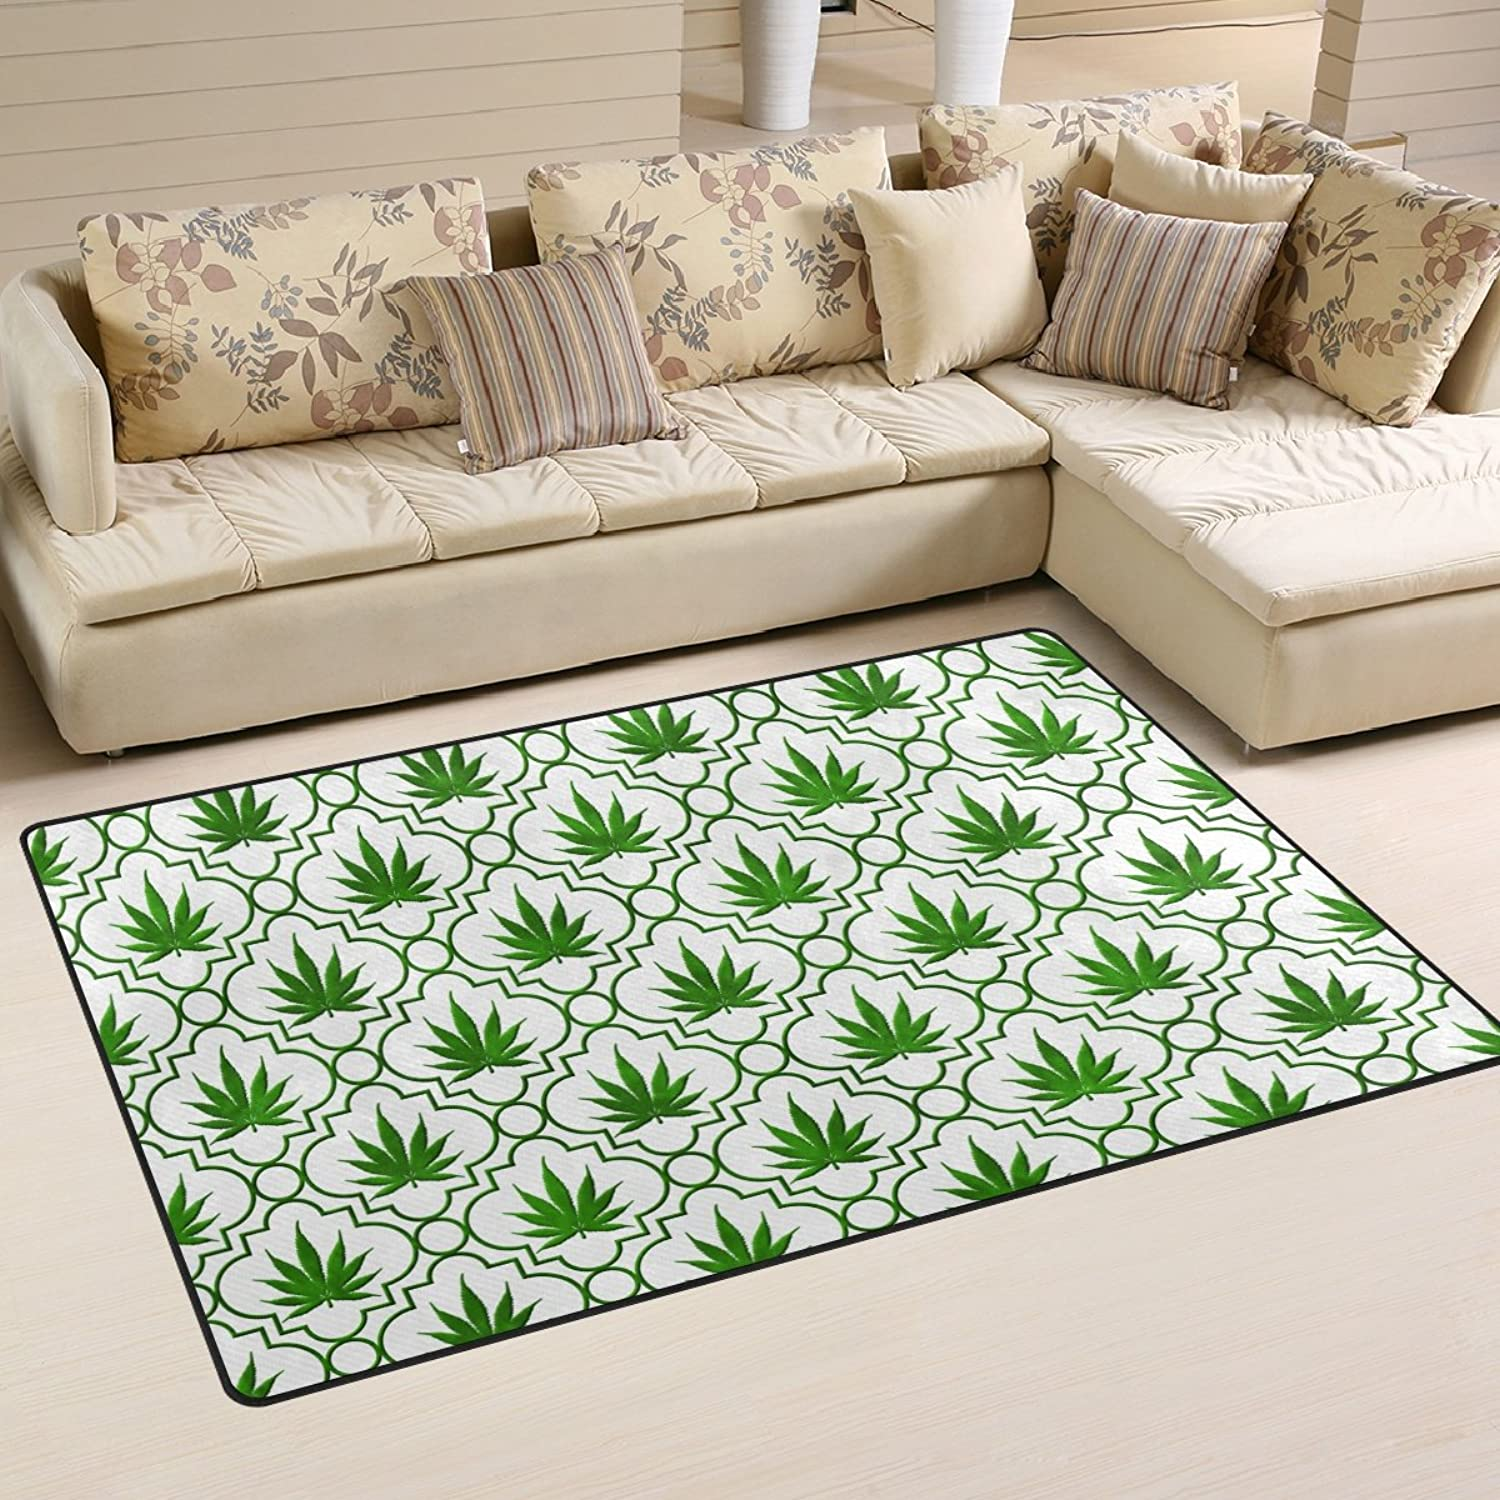 WellLee Area Rug 5'x3',Green Marijuana Leaf Quarterfoil Pattern Floor Rug Non-Slip Doormat for Living Dining Dorm Room Bedroom Decor